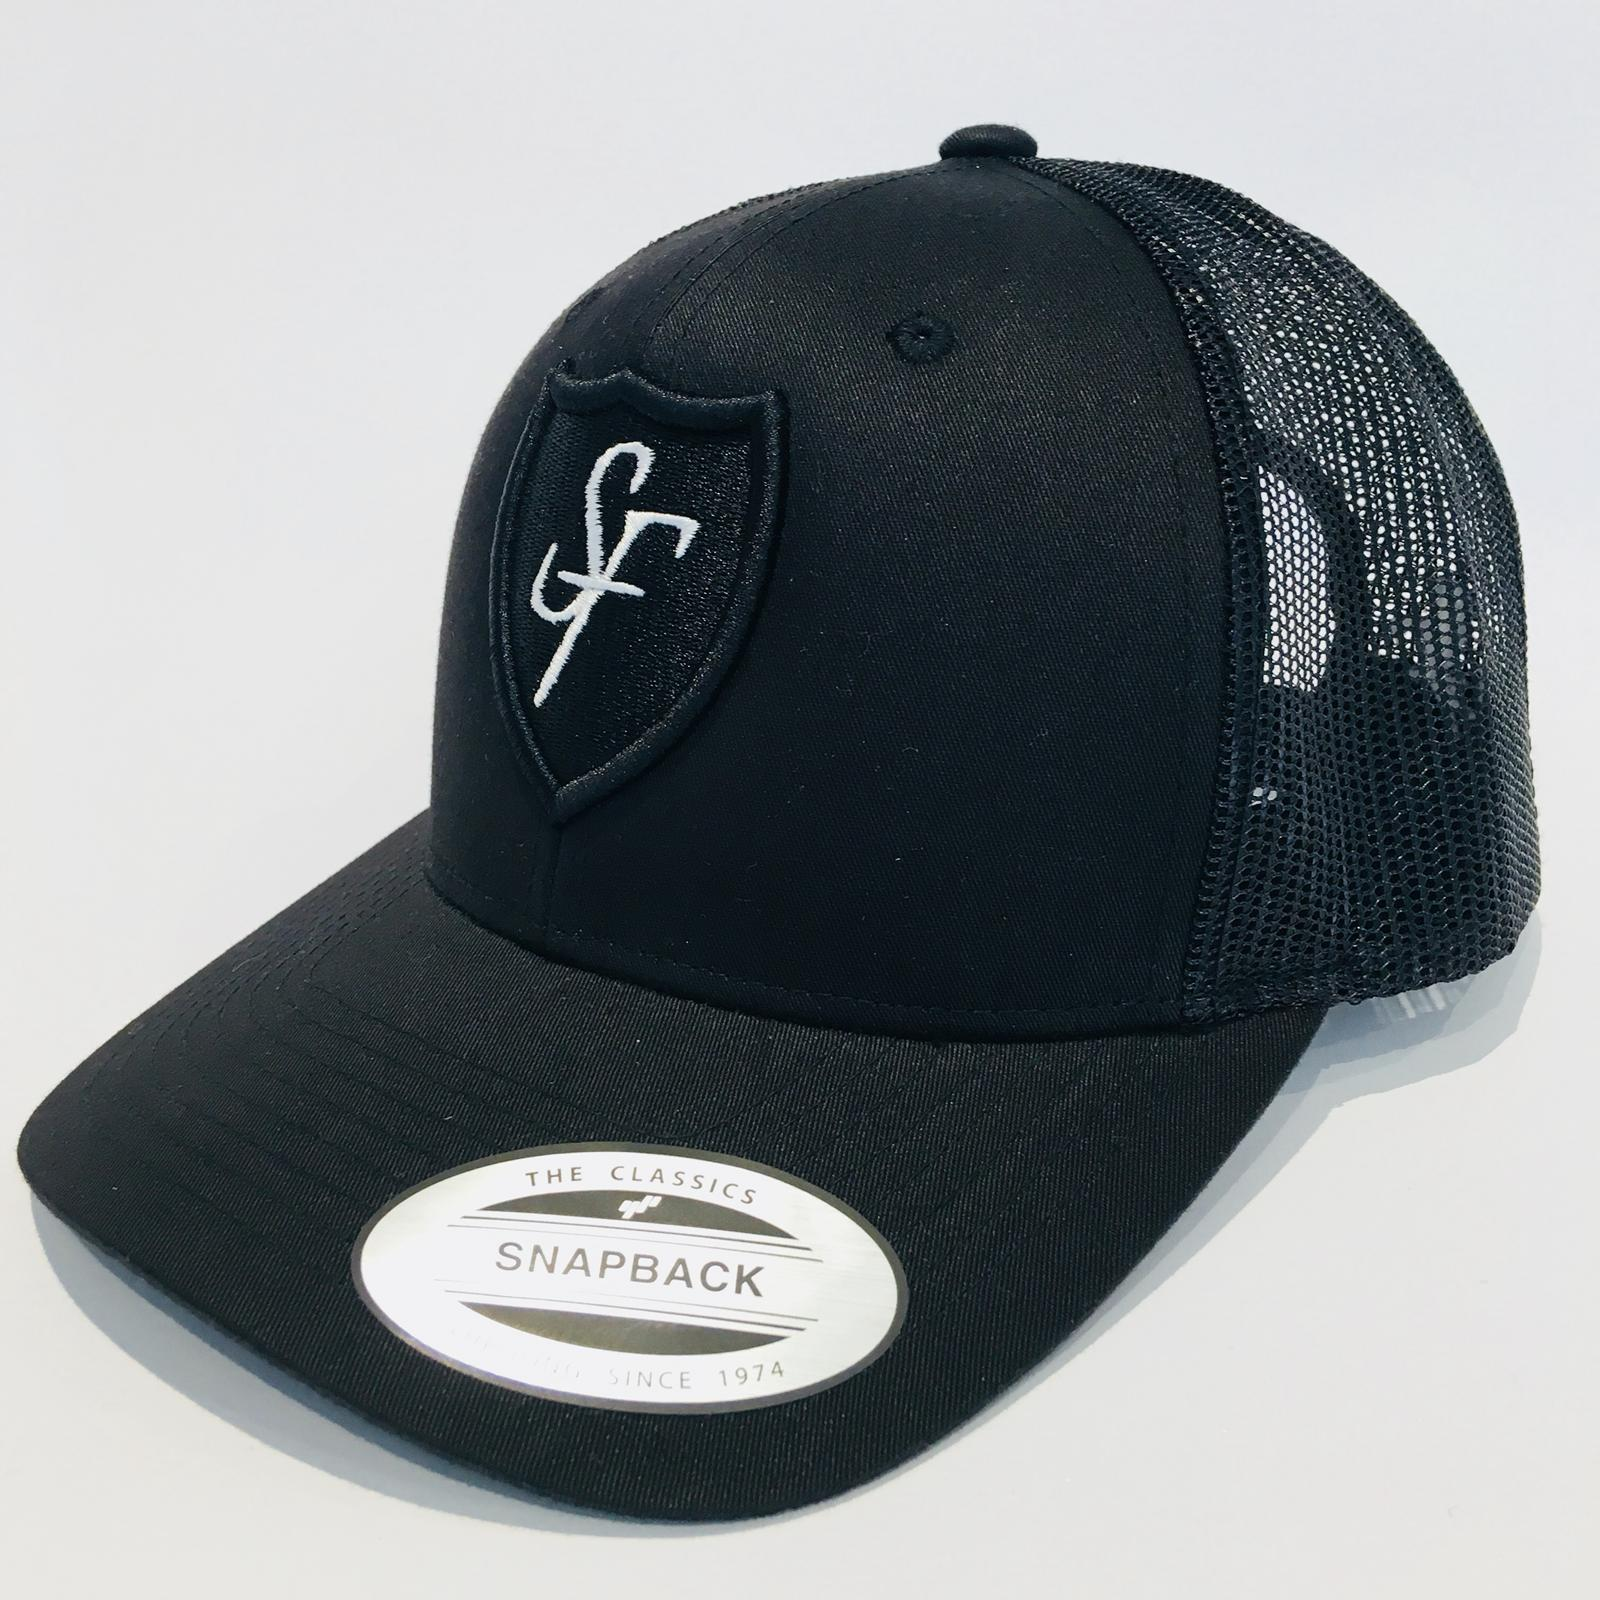 SIX FIGURES Shield Trucker Cap - Black